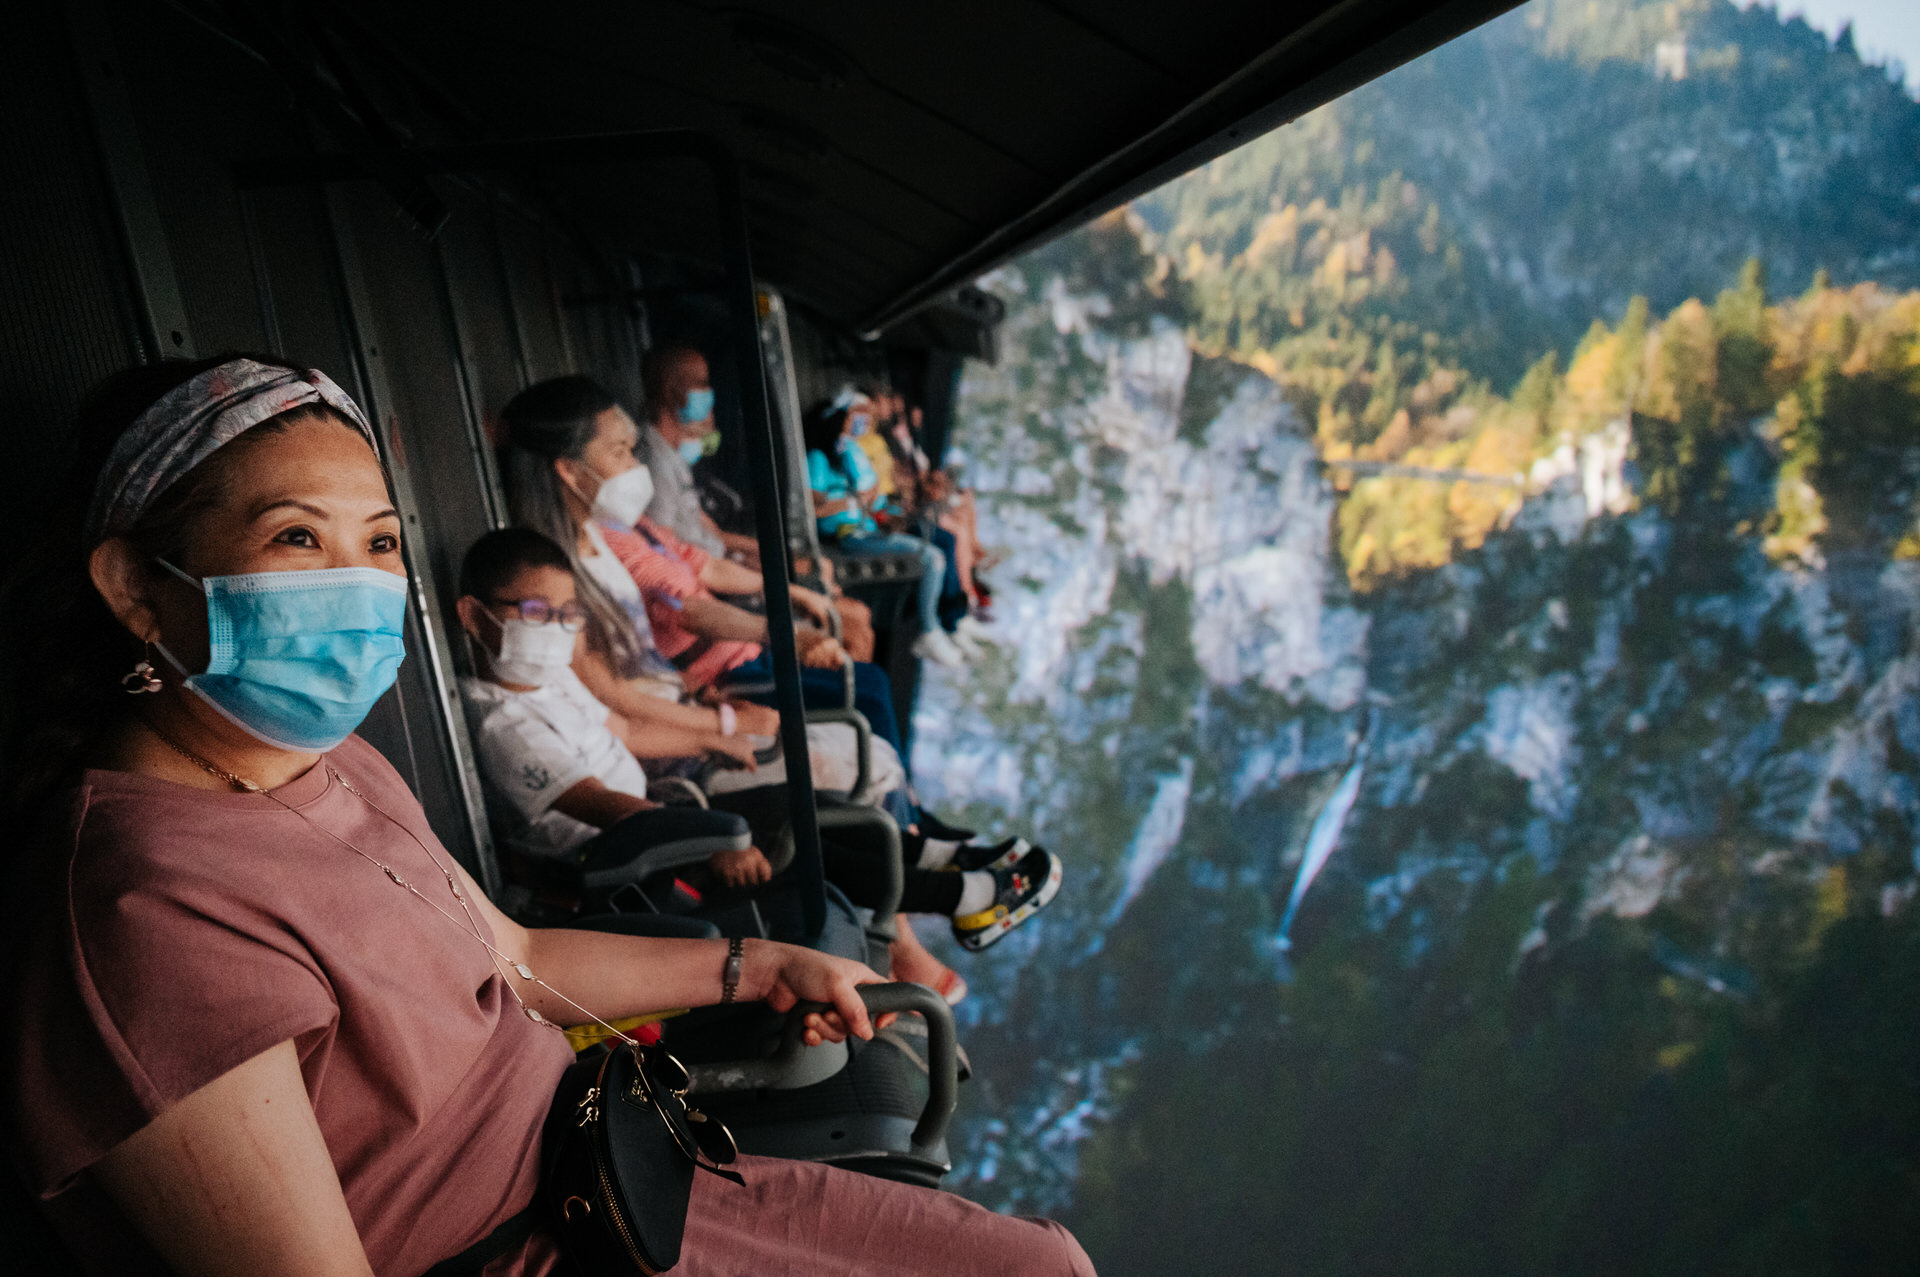 family enjoys soarin ride while mask mandate is in place